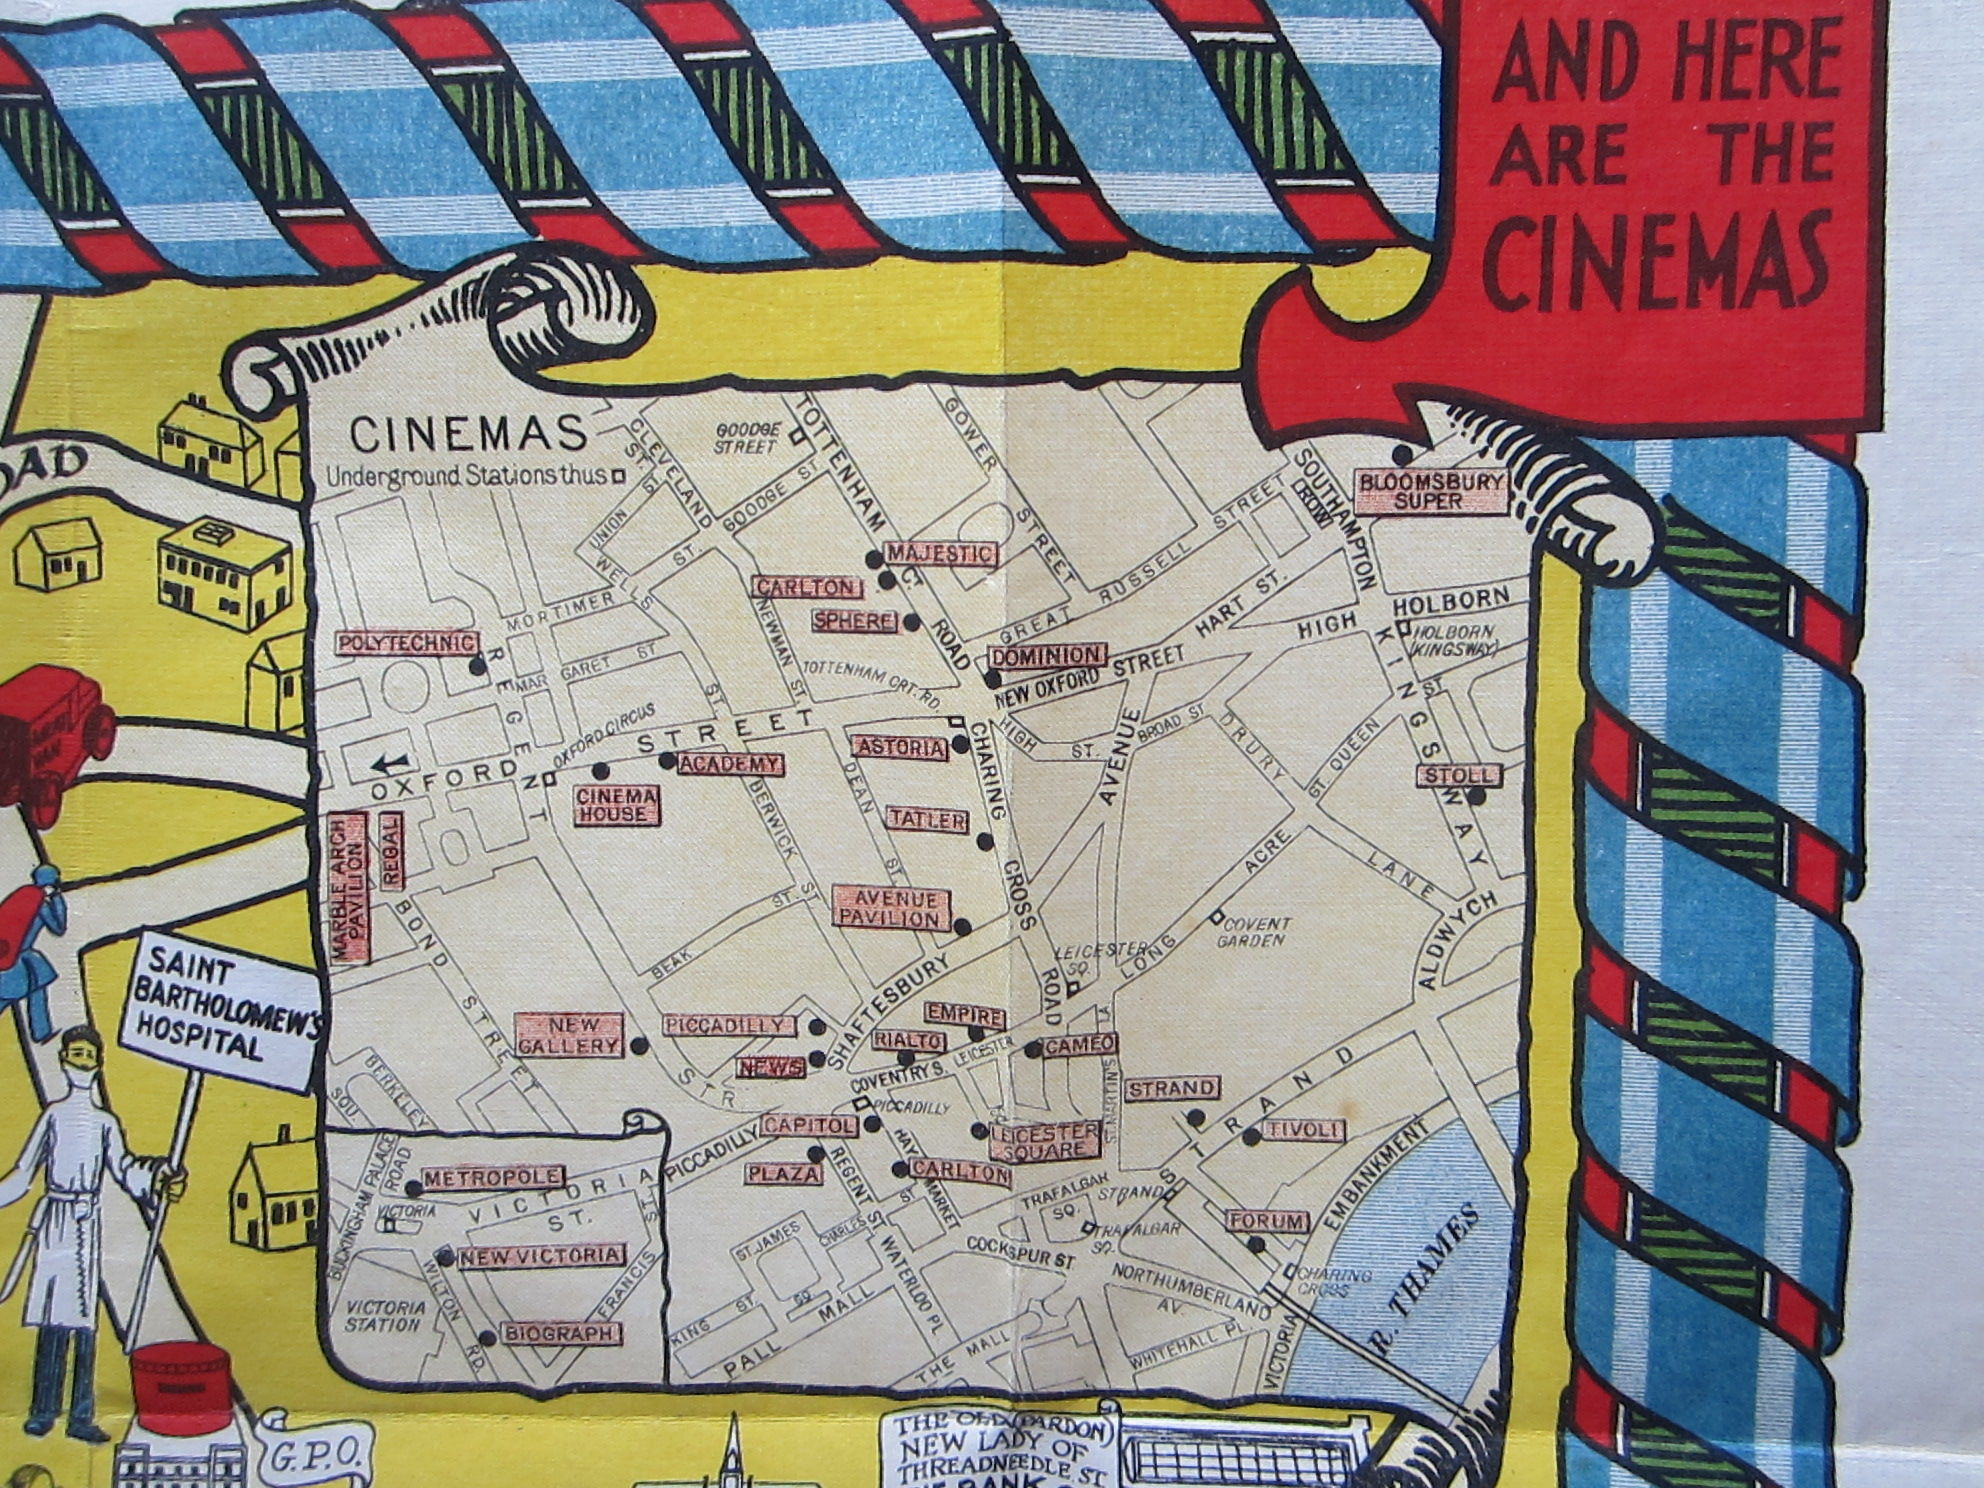 The New Pictorial Map of London (photo 2)